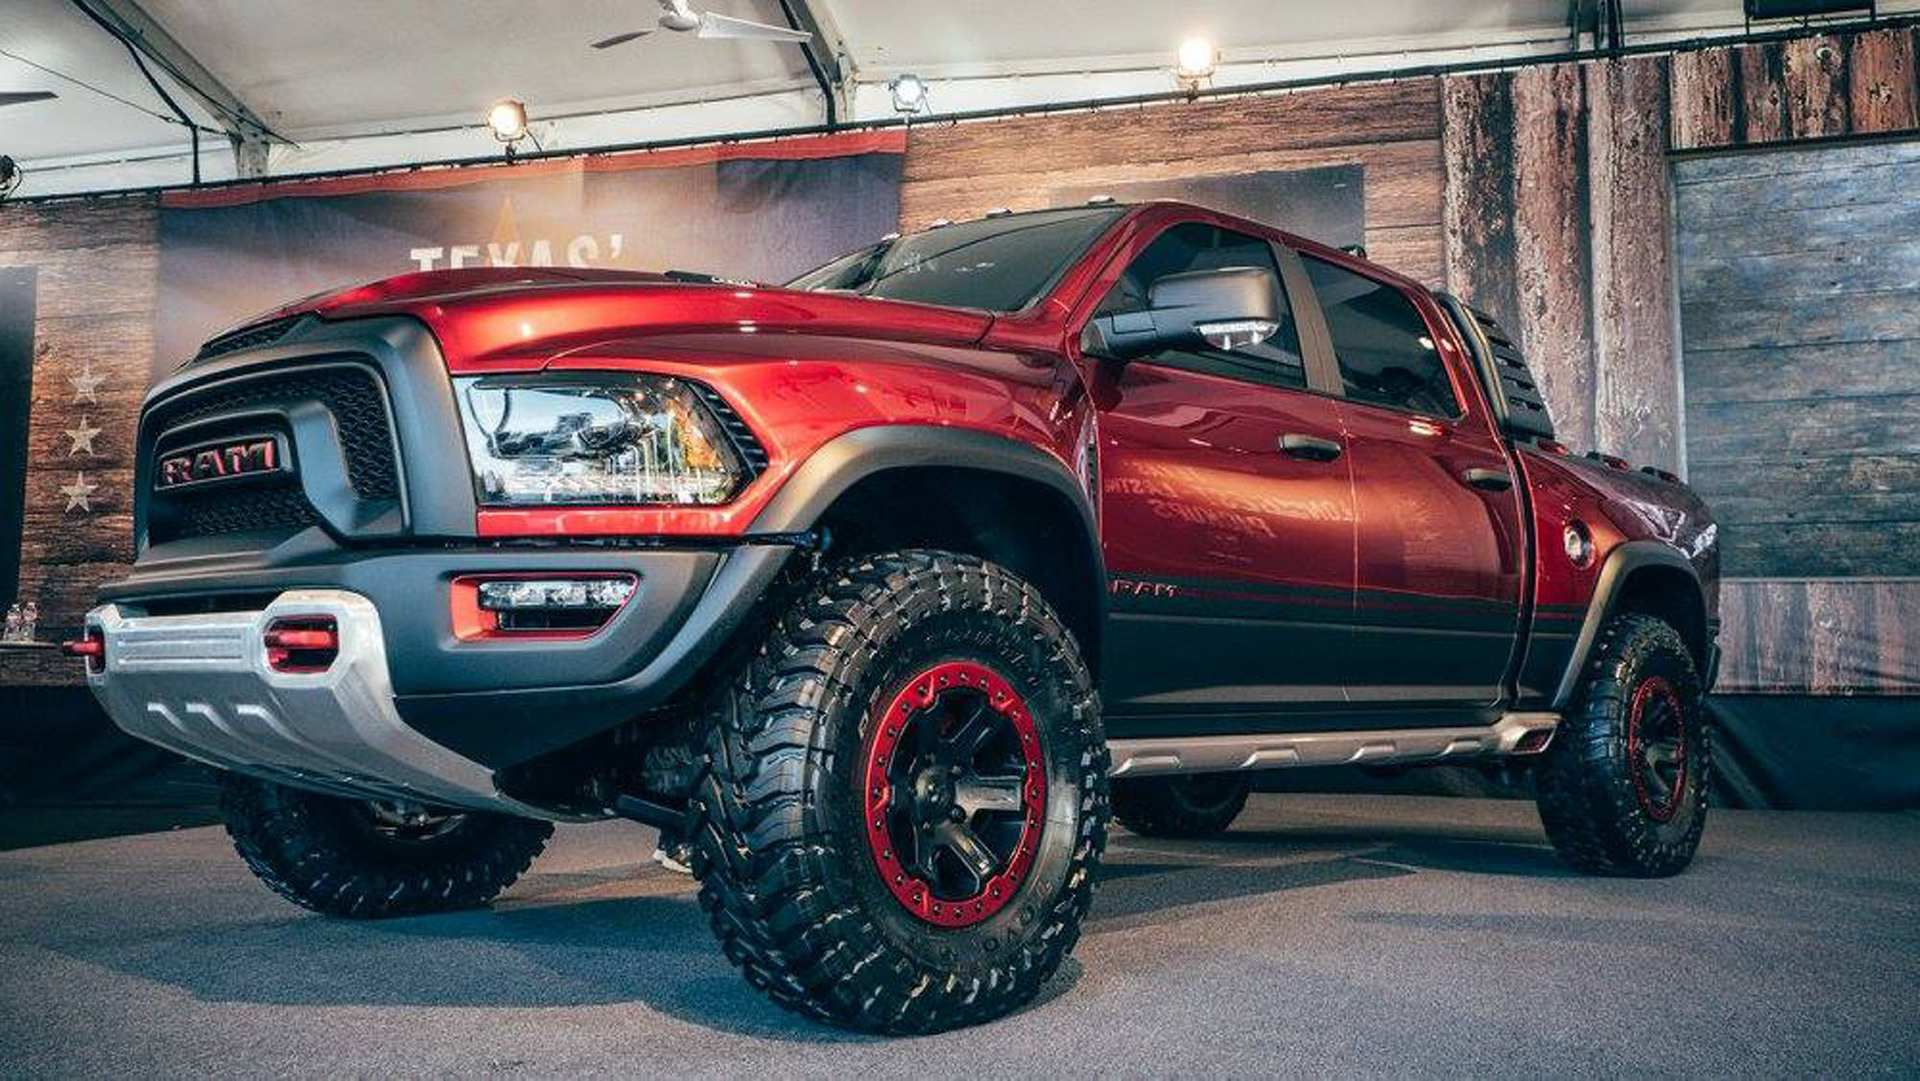 24 New 2020 Dodge Pickup Photos with 2020 Dodge Pickup